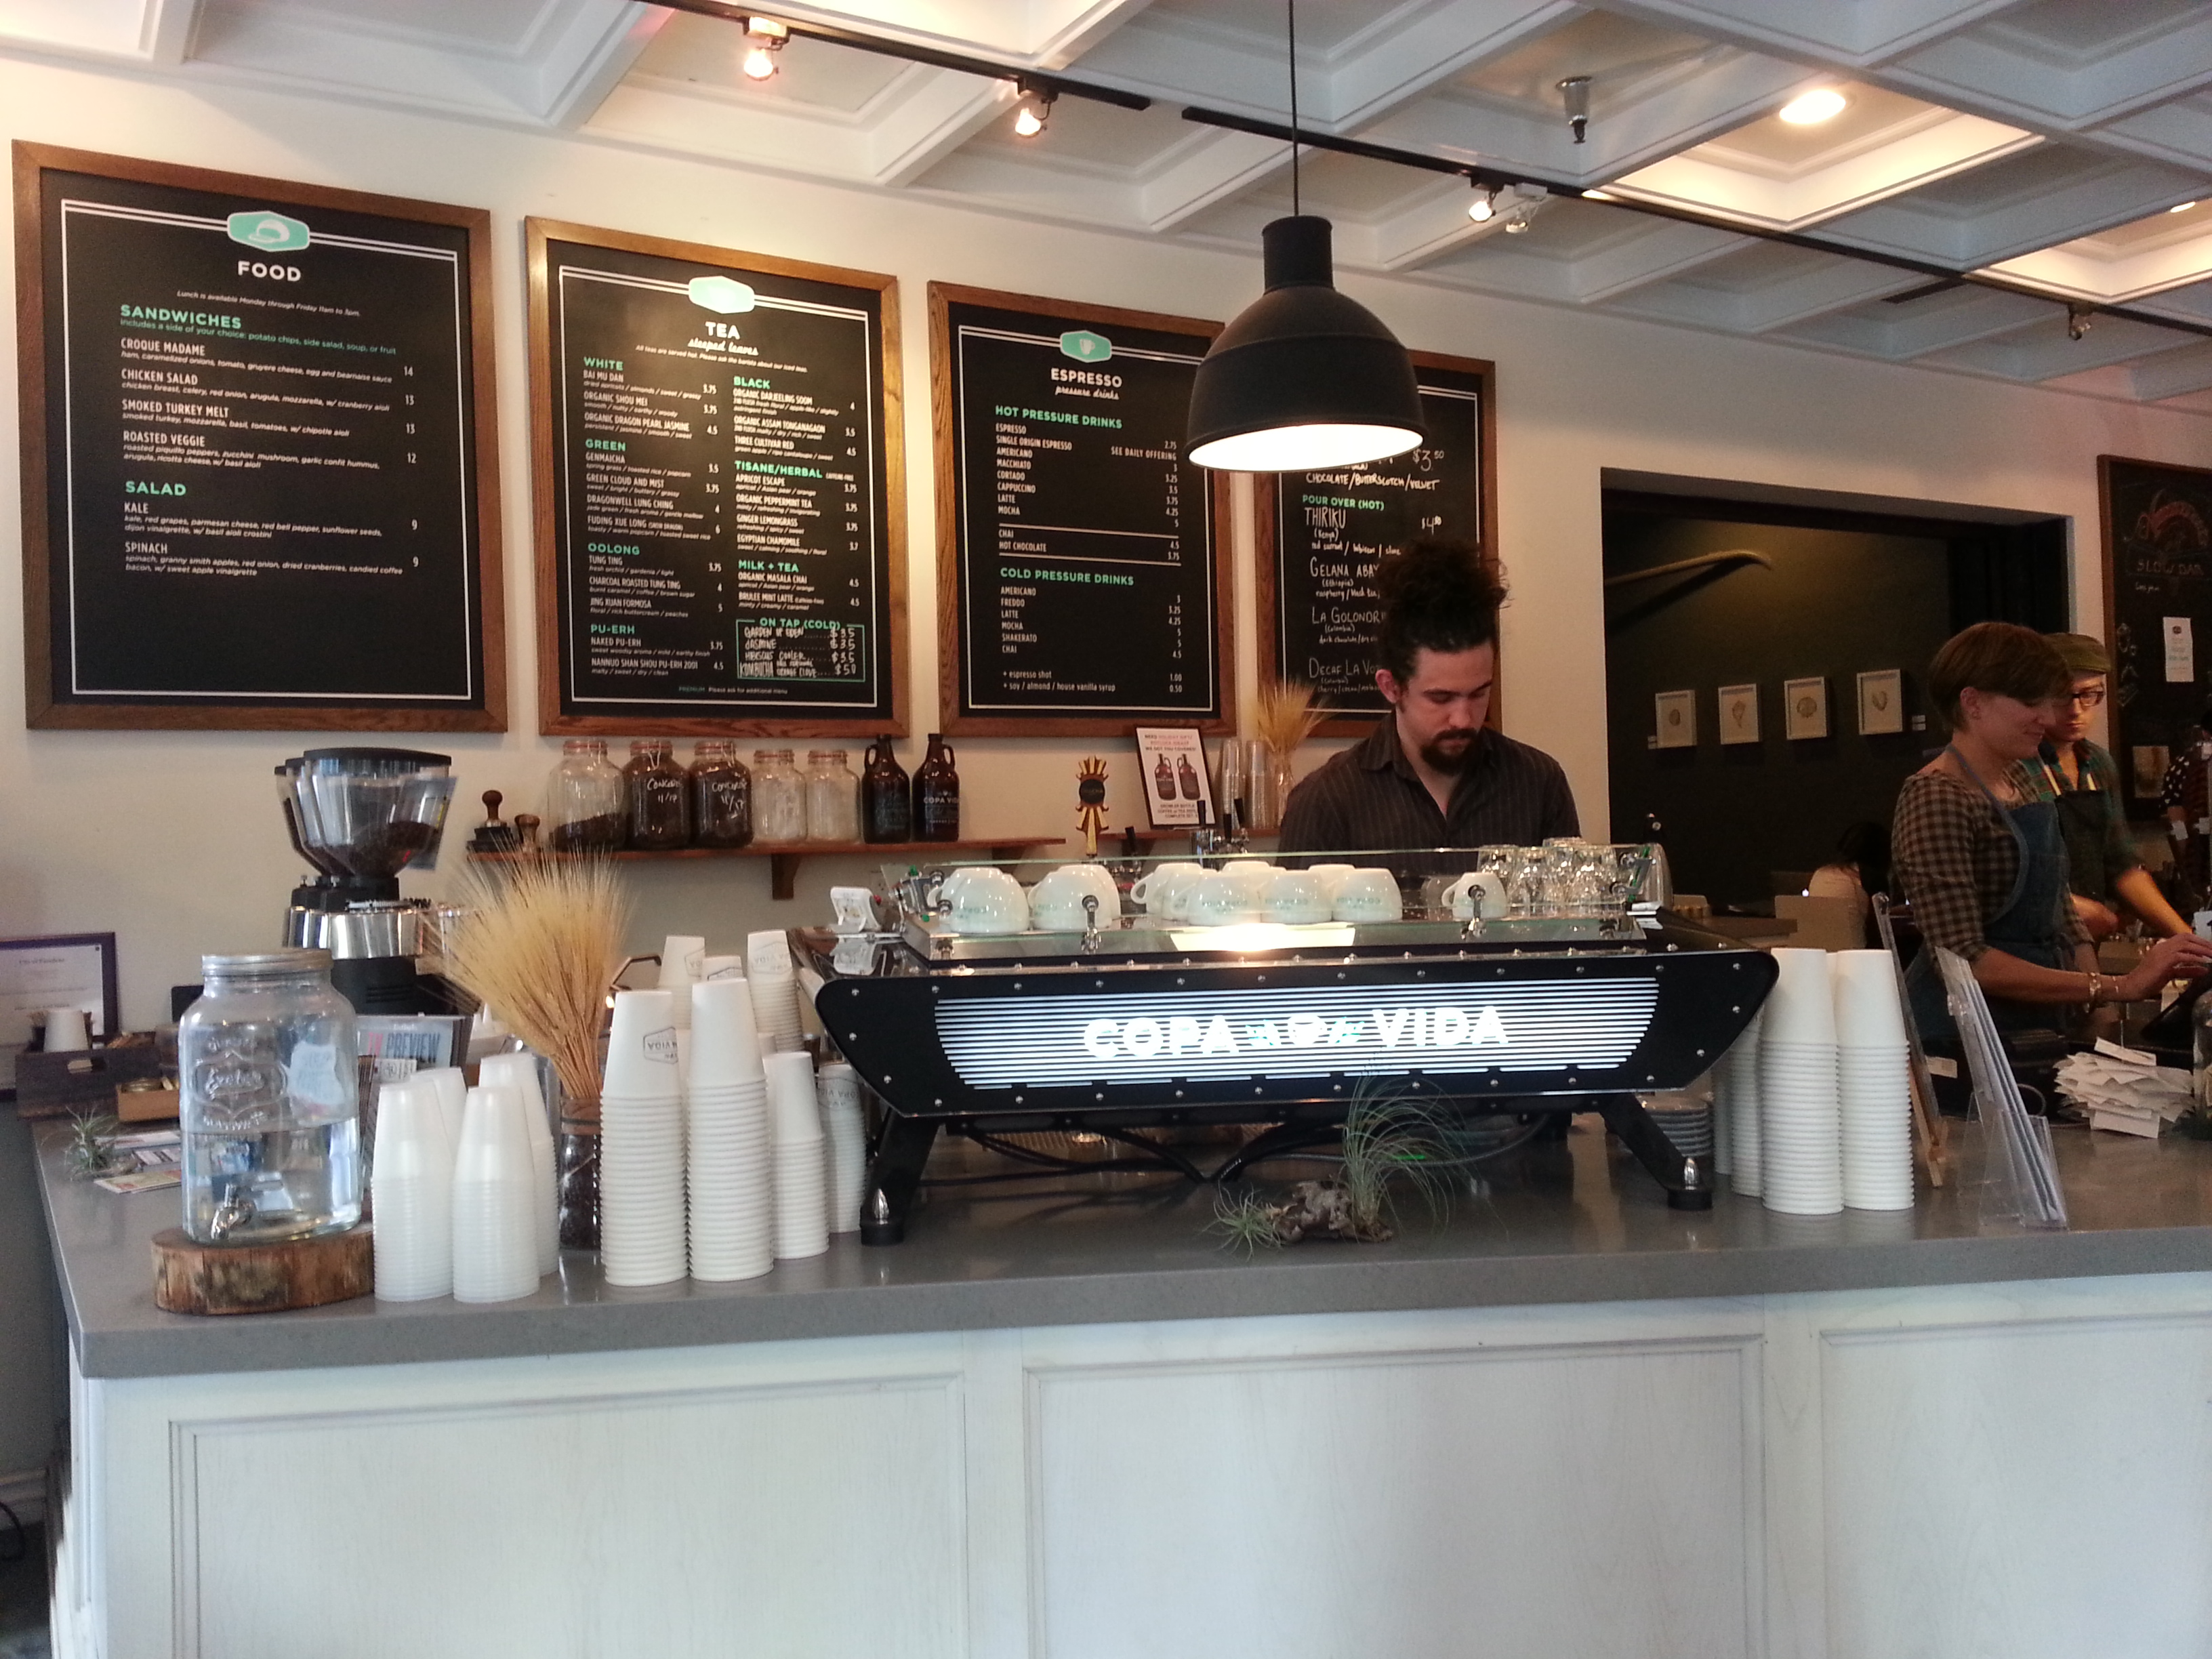 coolandcaffeinated  coffee and cool coffee spaces